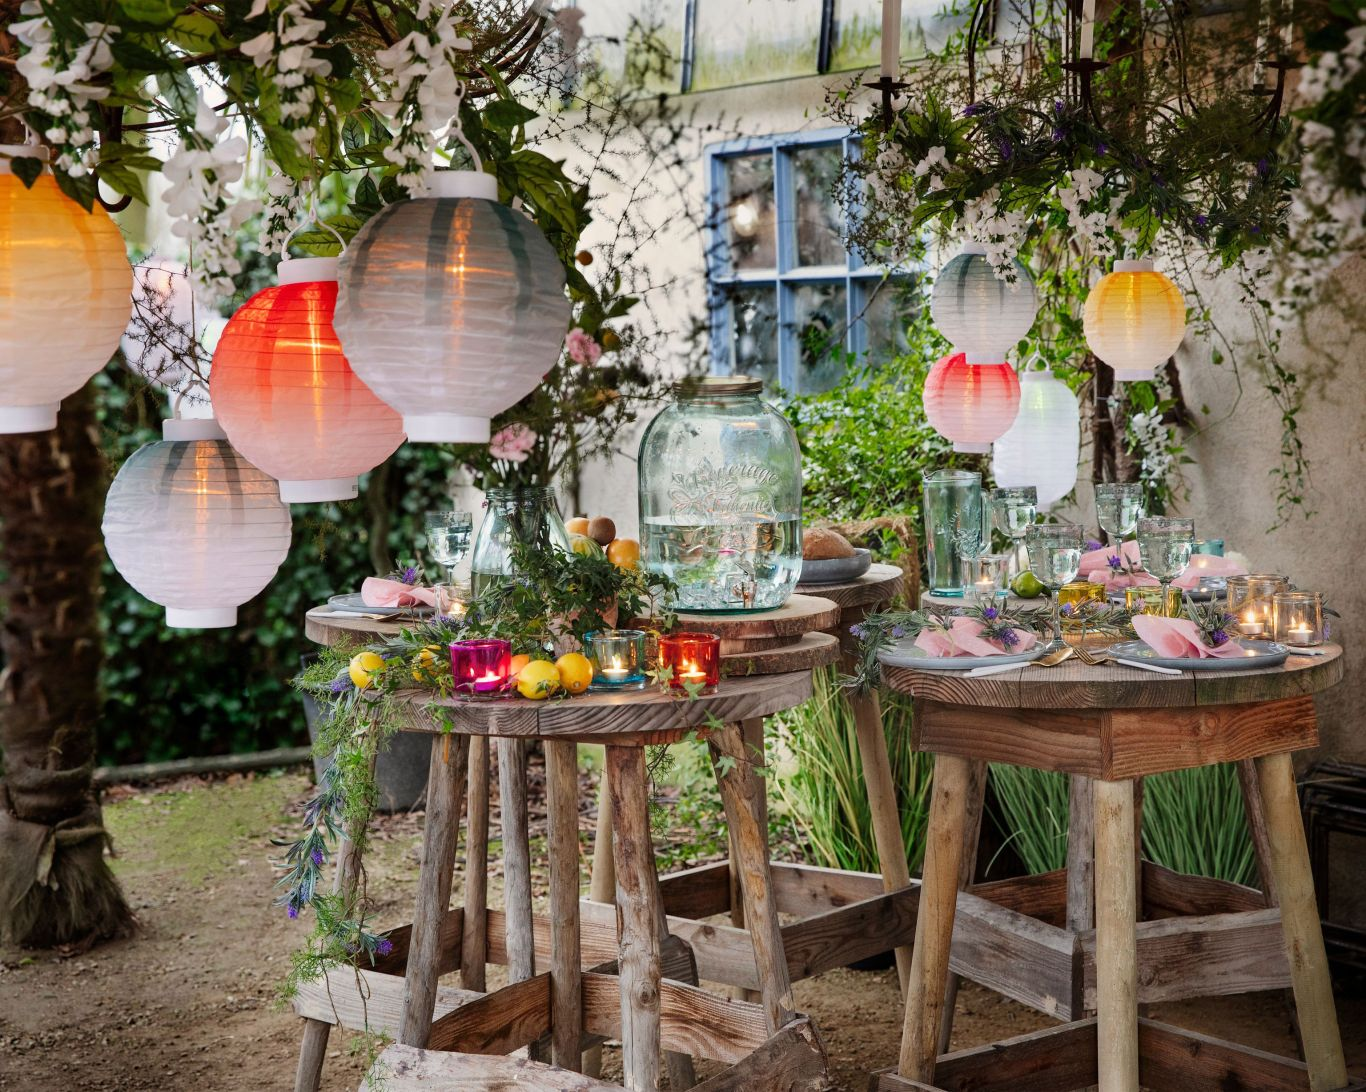 garden-party-outdoors-lanterns-lights-drinks